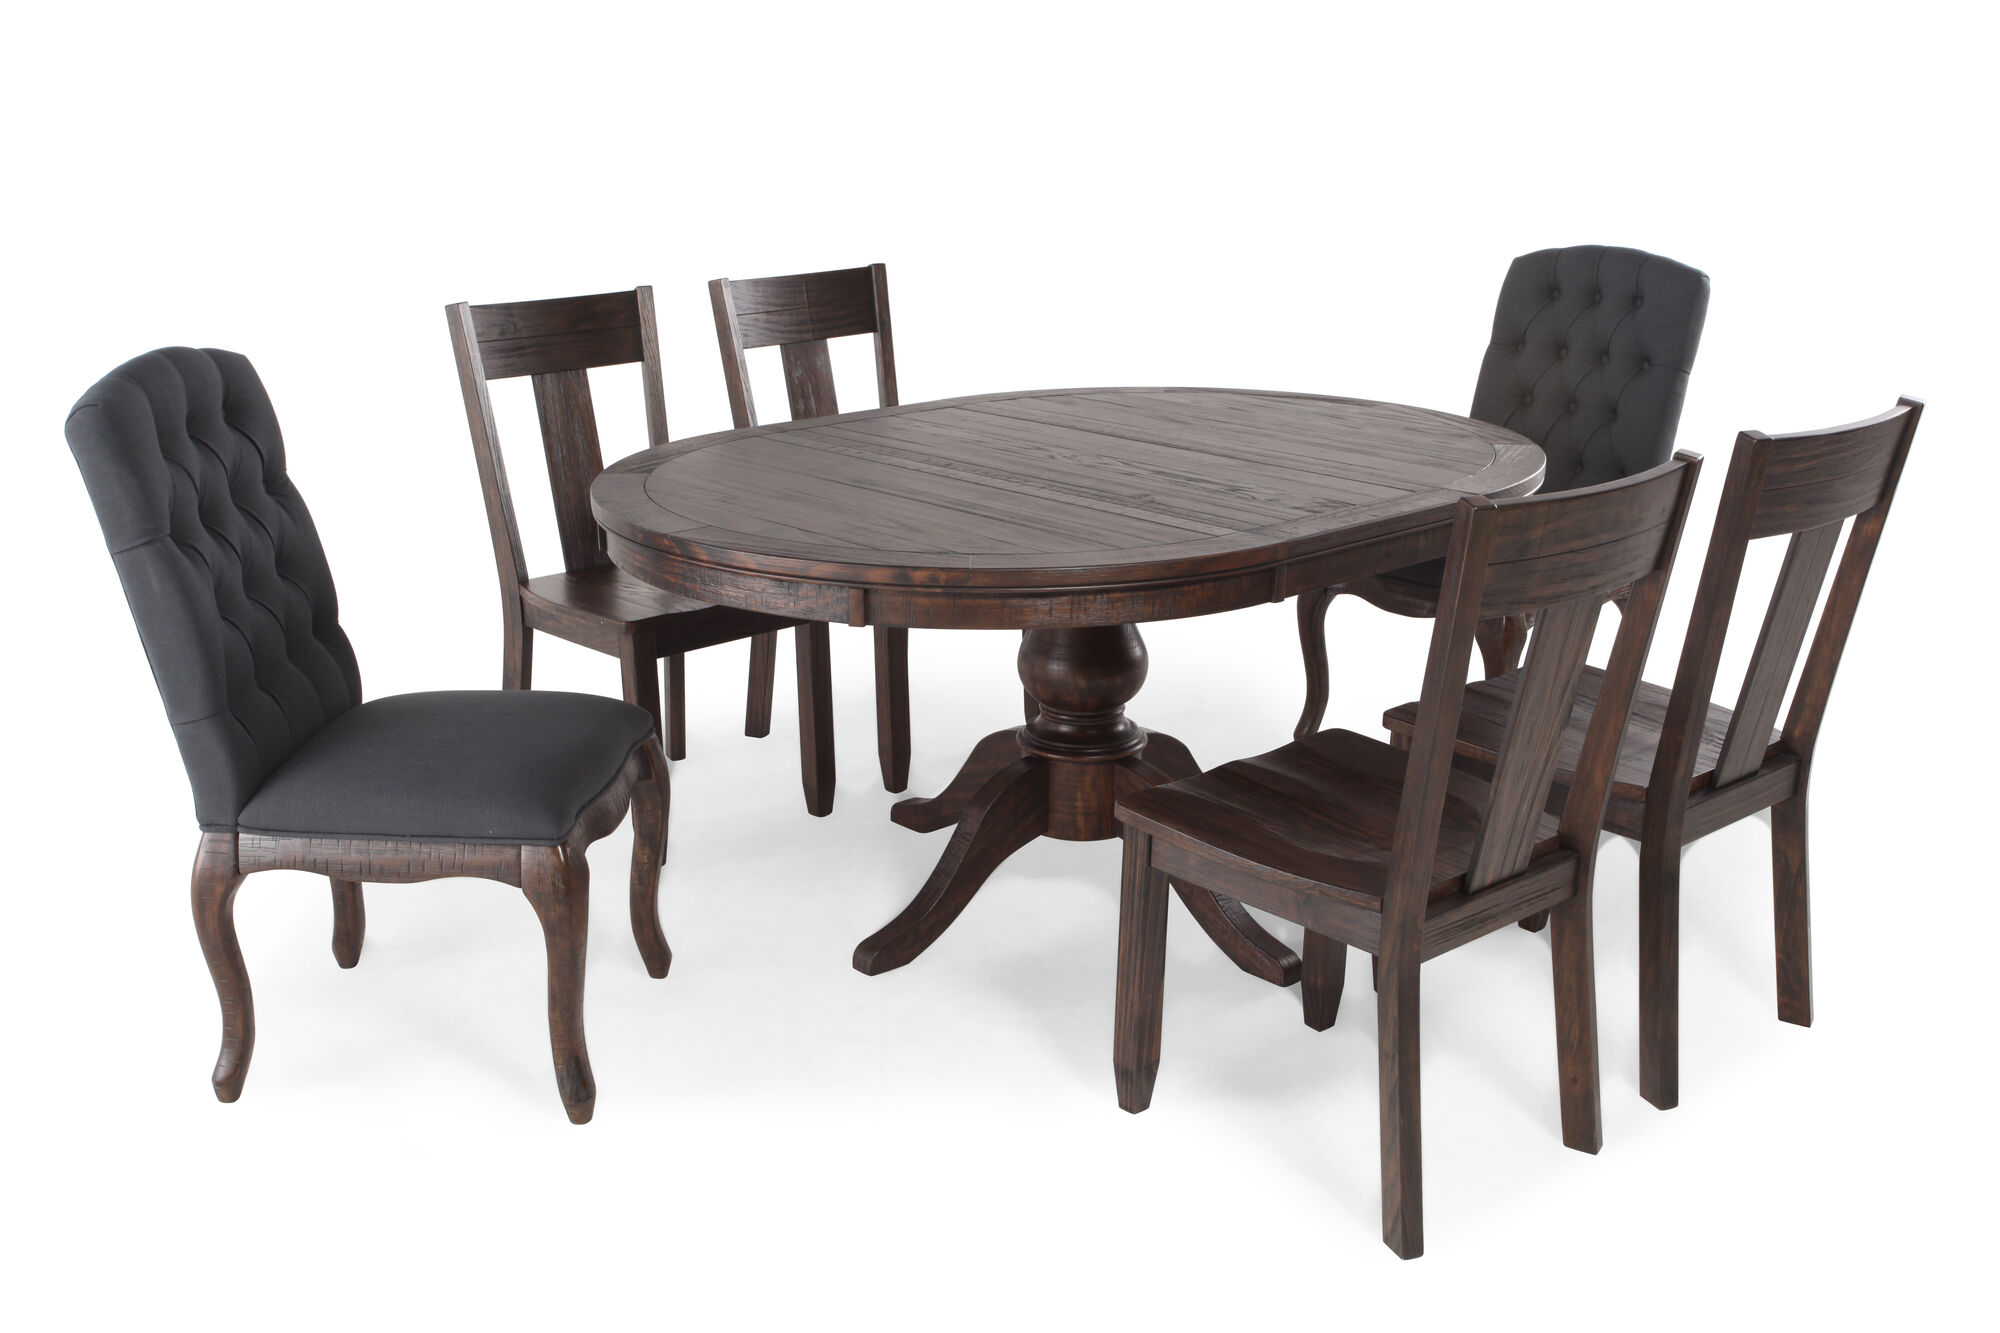 Seven piece button tufted traditional 48 to 66 dining set in dark pine mathis brothers furniture